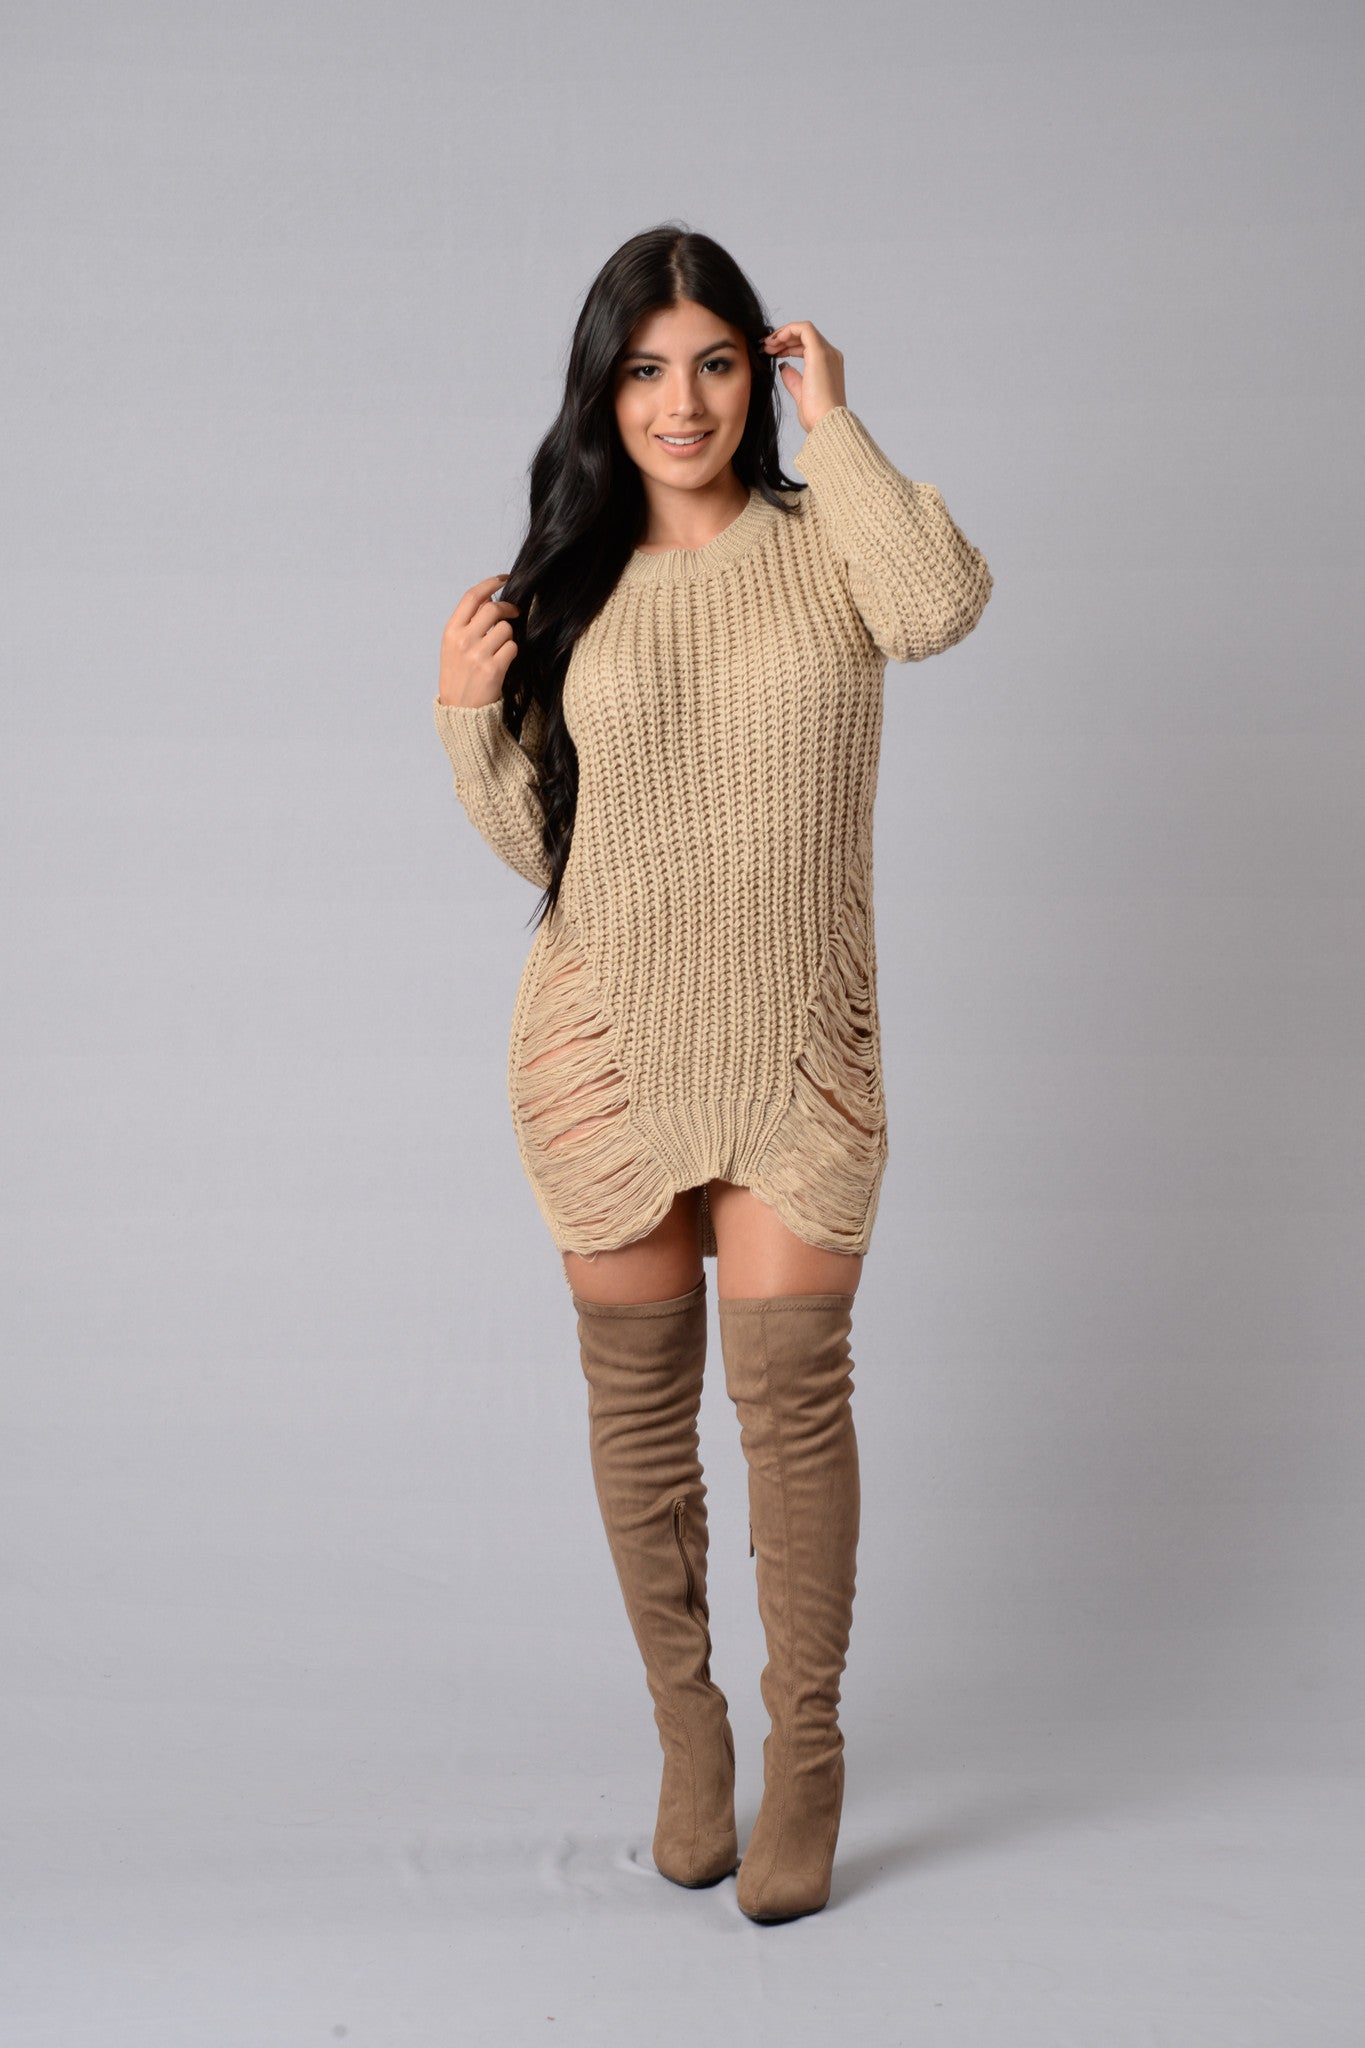 Sweater dress outfit images